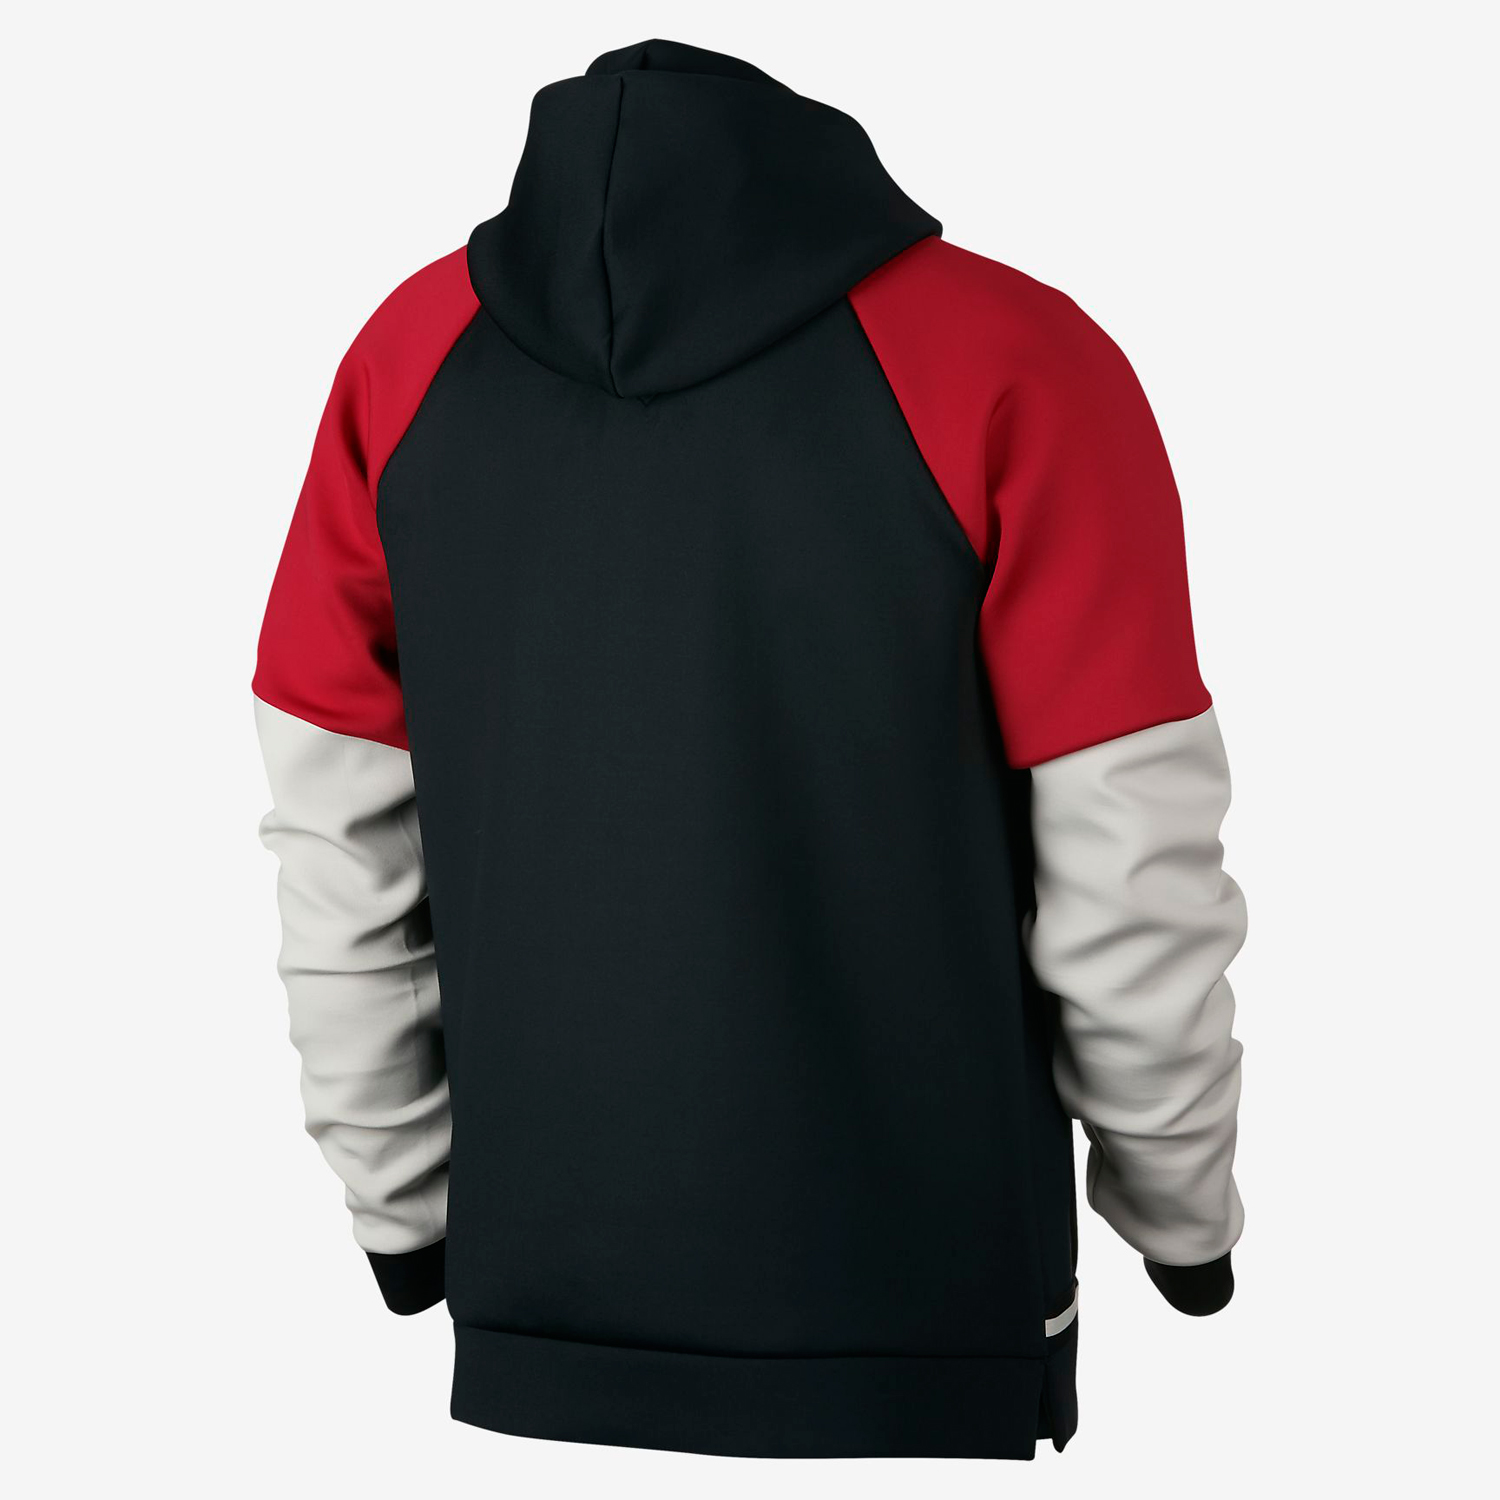 jordan-13-he-got-game-jordan-hoodie-to-match-2